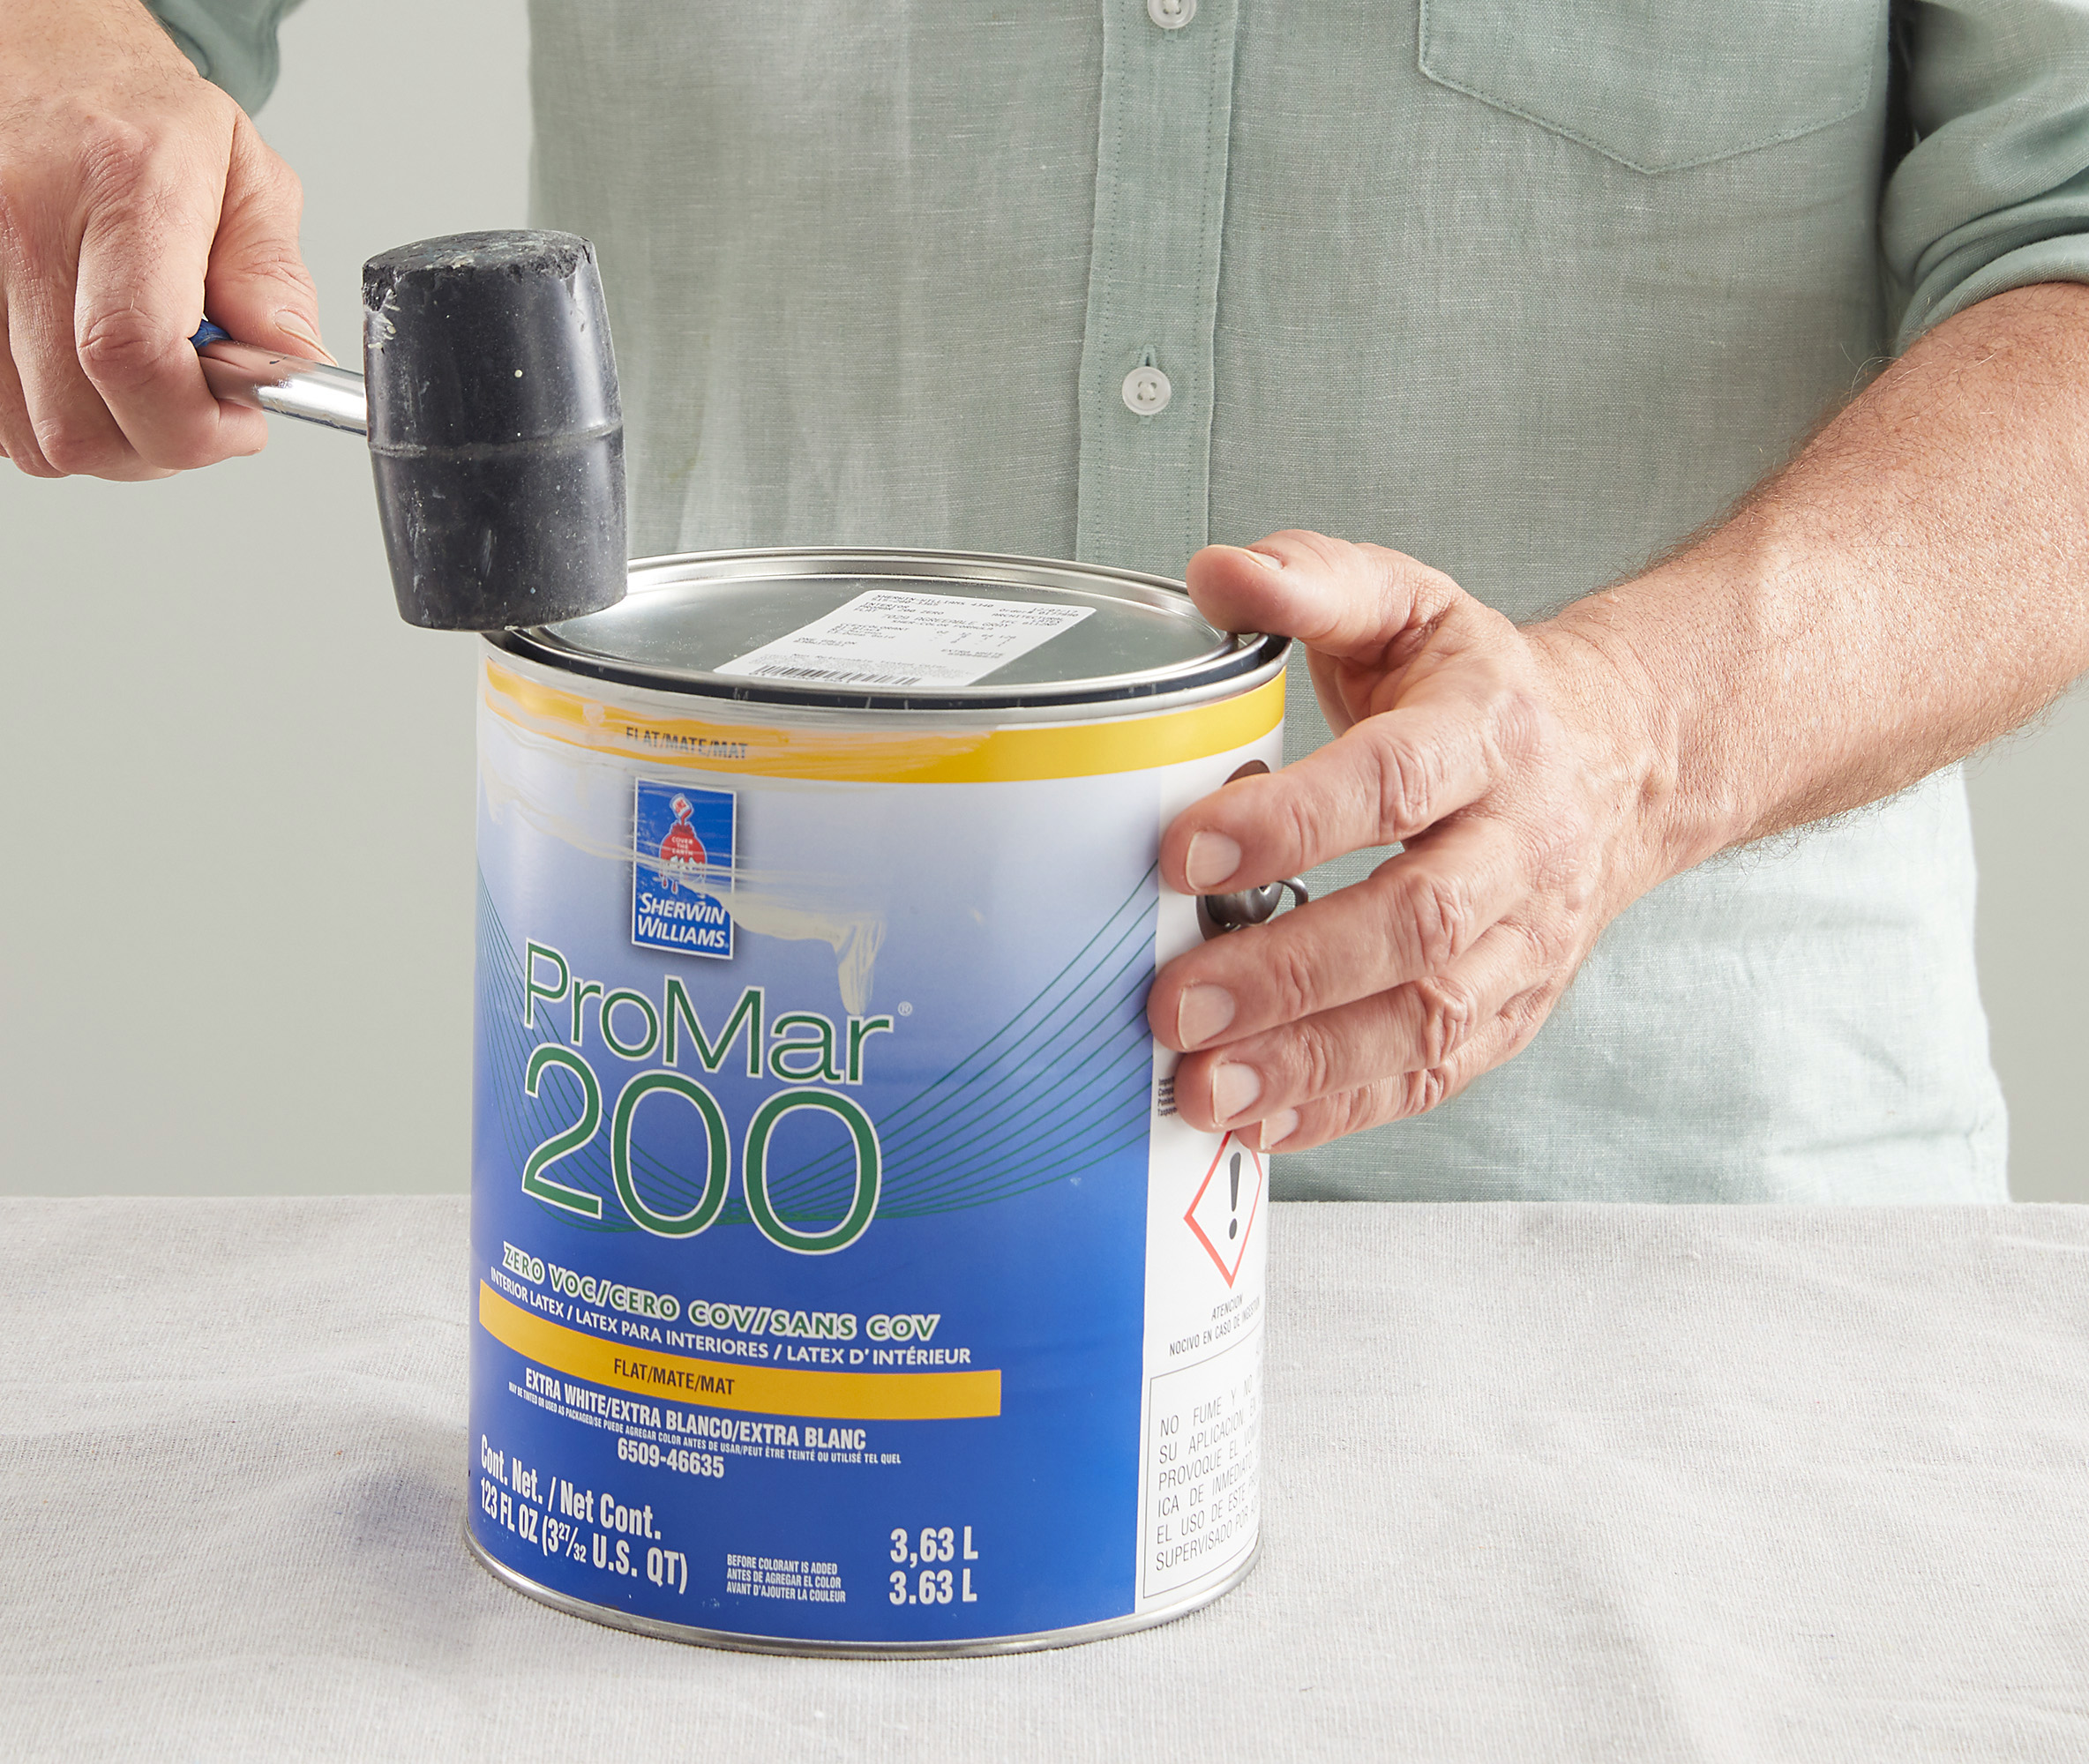 tapping lid with mallet to close paint can